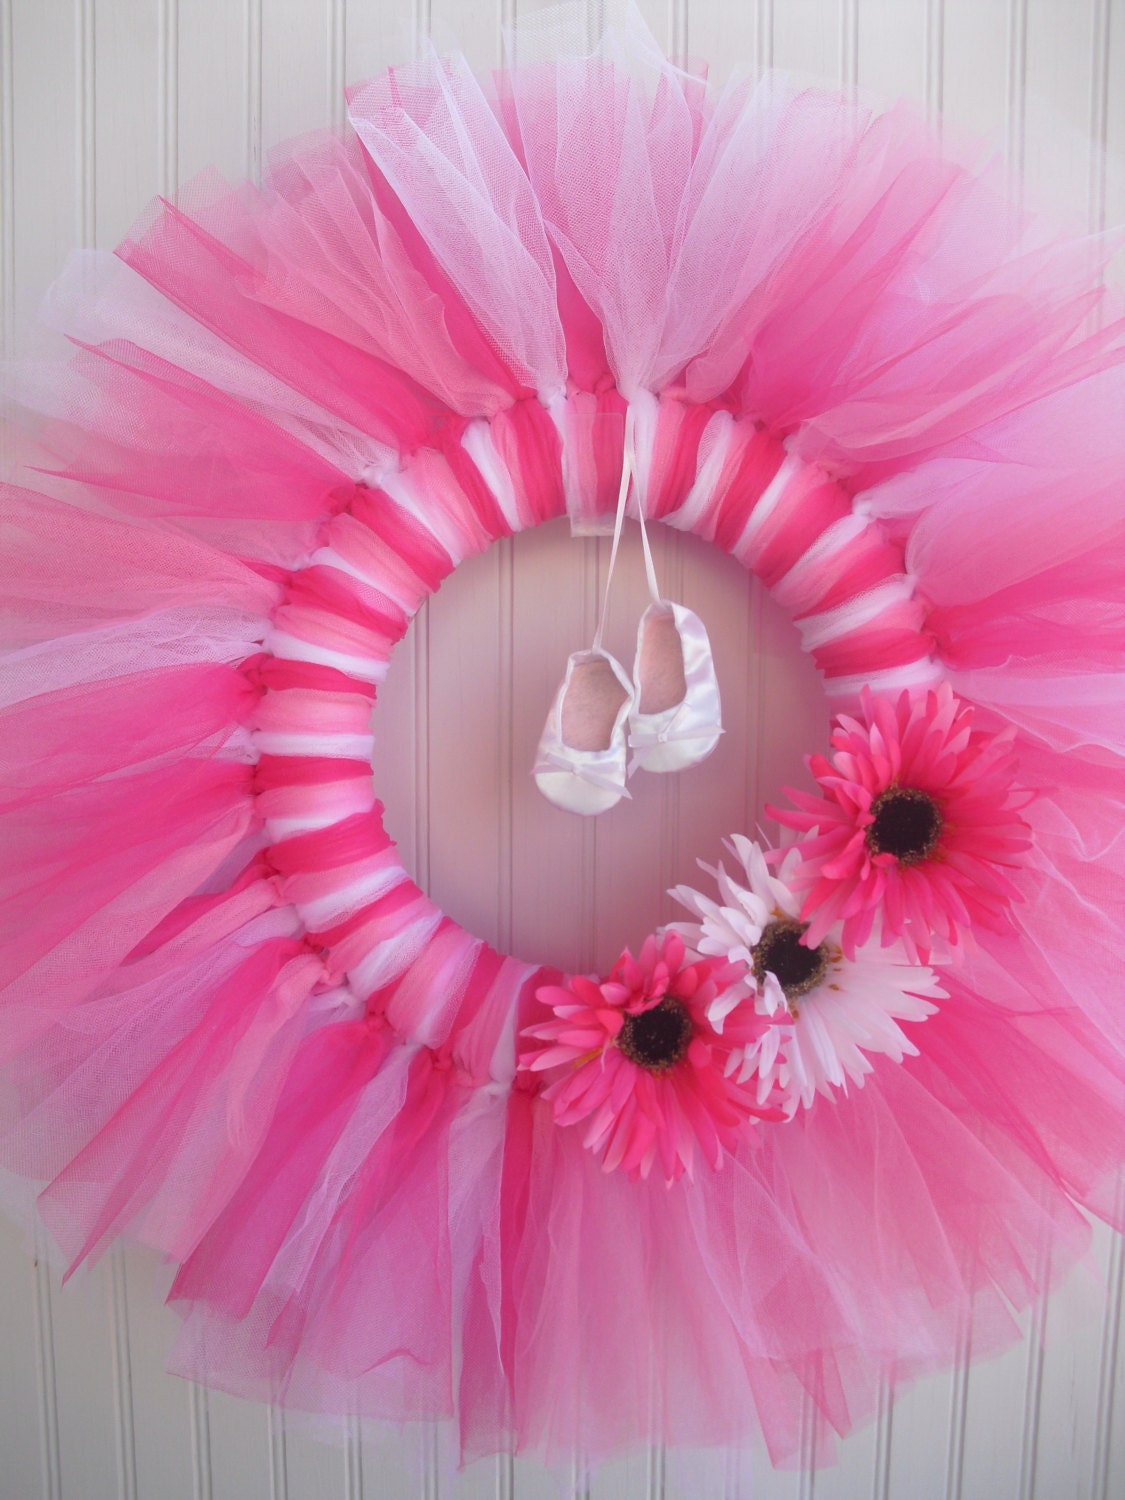 Items similar to ballerina tulle wreath on etsy for Ballet shoes christmas decoration